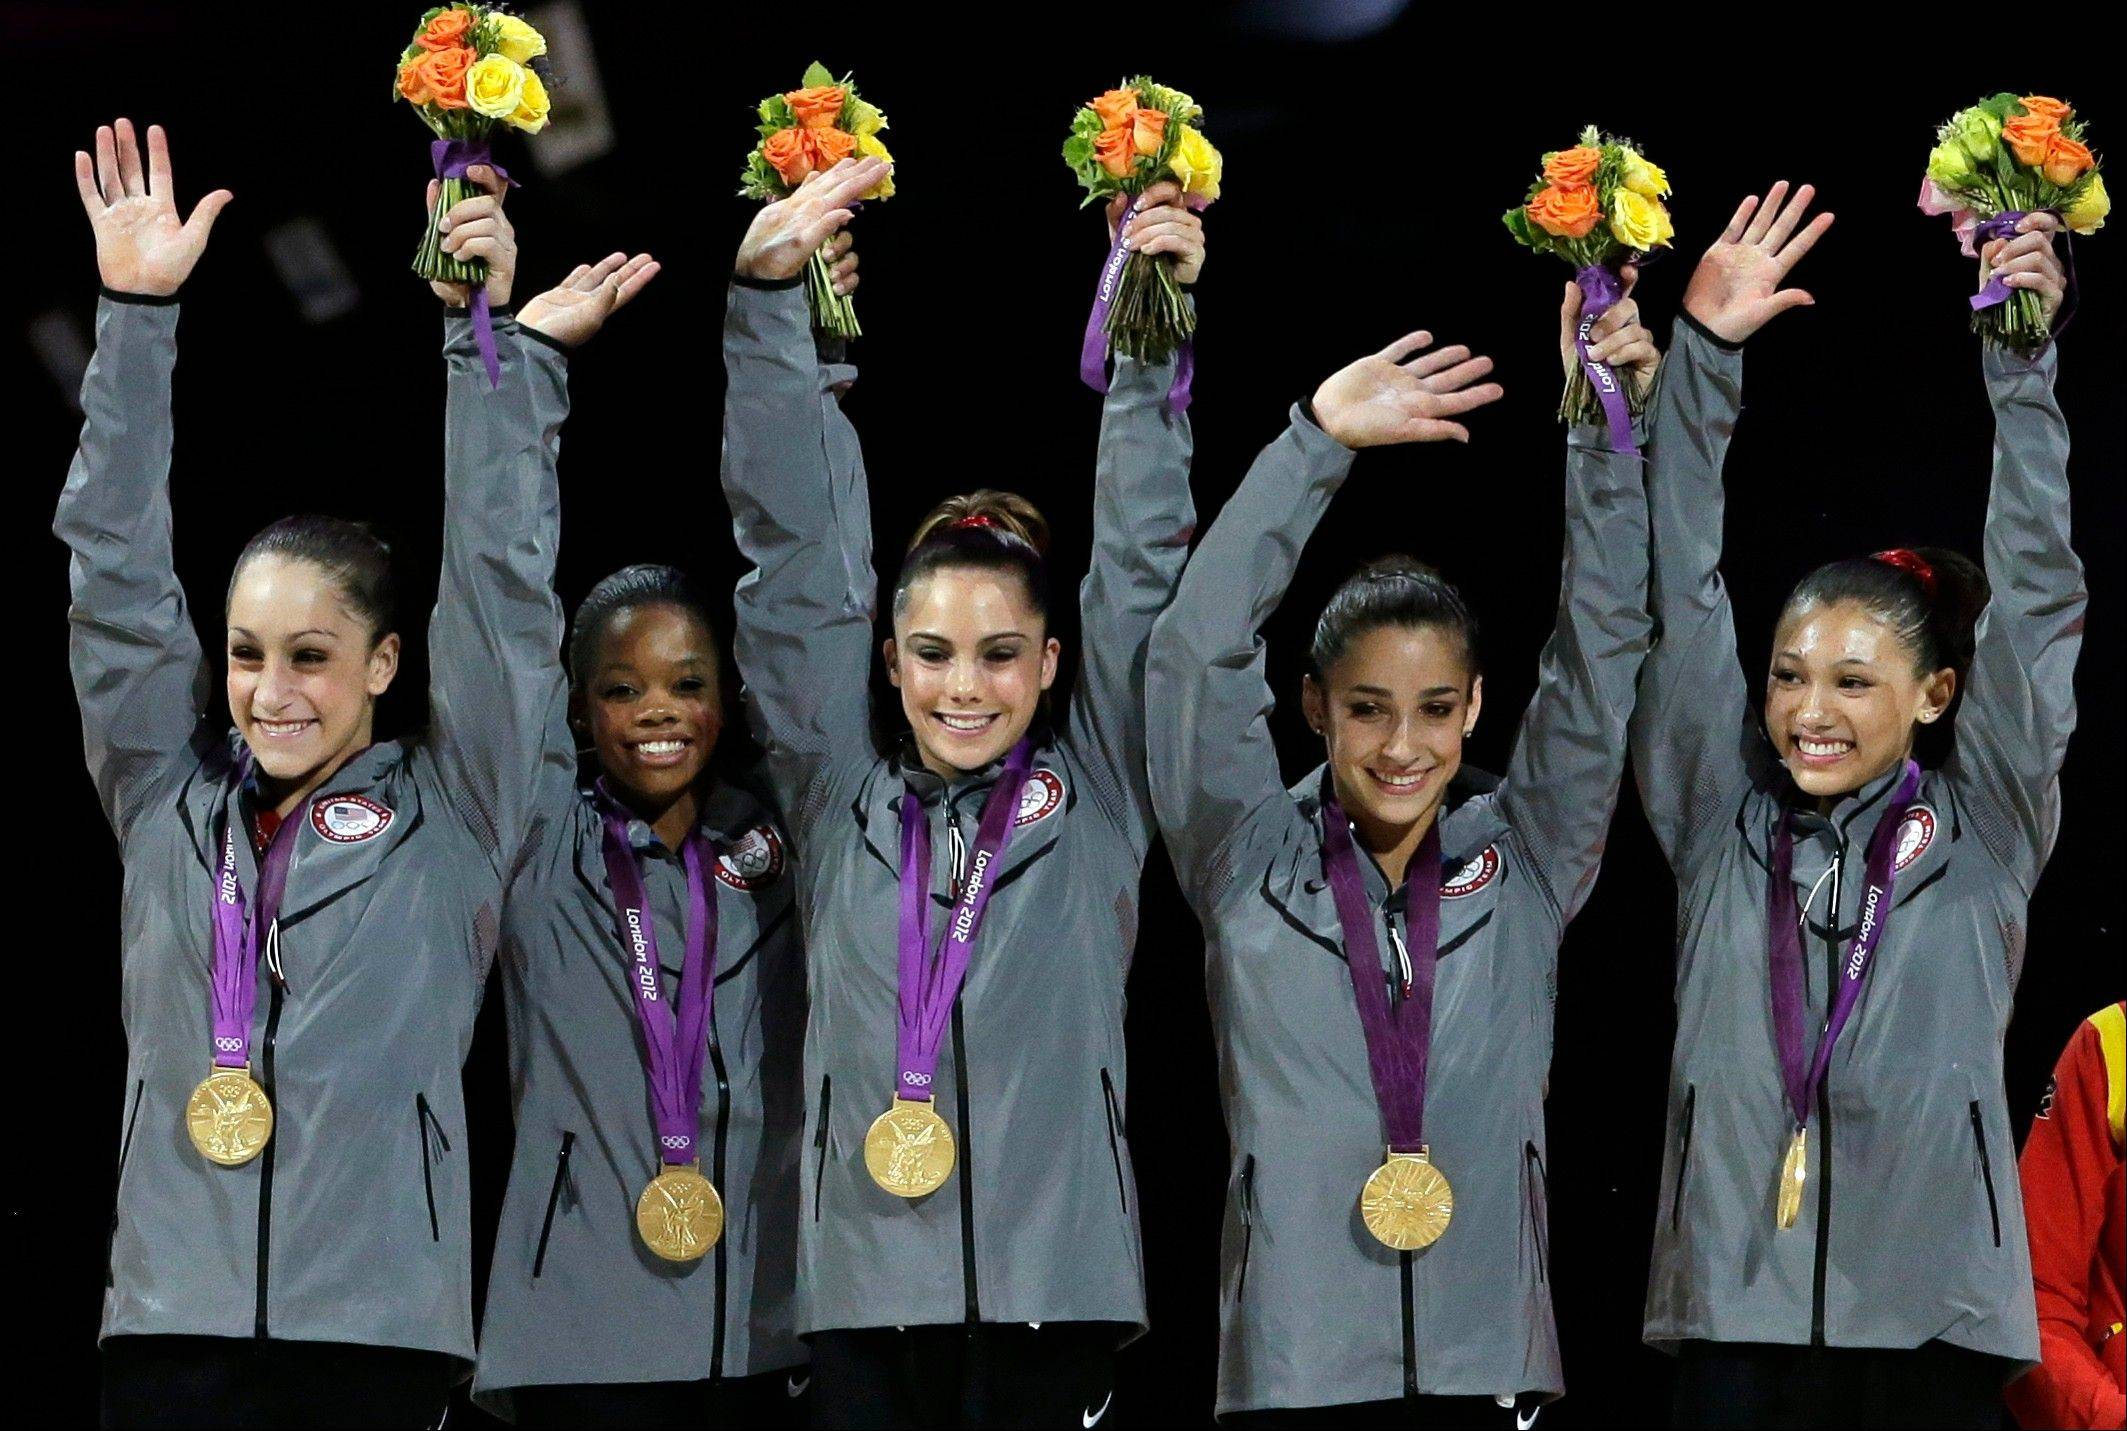 U.S. gymnasts, left to right, Jordyn Wieber, Gabrielle Douglas, McKayla Maroney, Alexandra Raisman, Kyla Ross raise their hands on the podium during the medal ceremony during the Artistic Gymnastic women�s team final at the 2012 Summer Olympics, Tuesday, July 31, 2012, in London. Team U.S. won the gold.